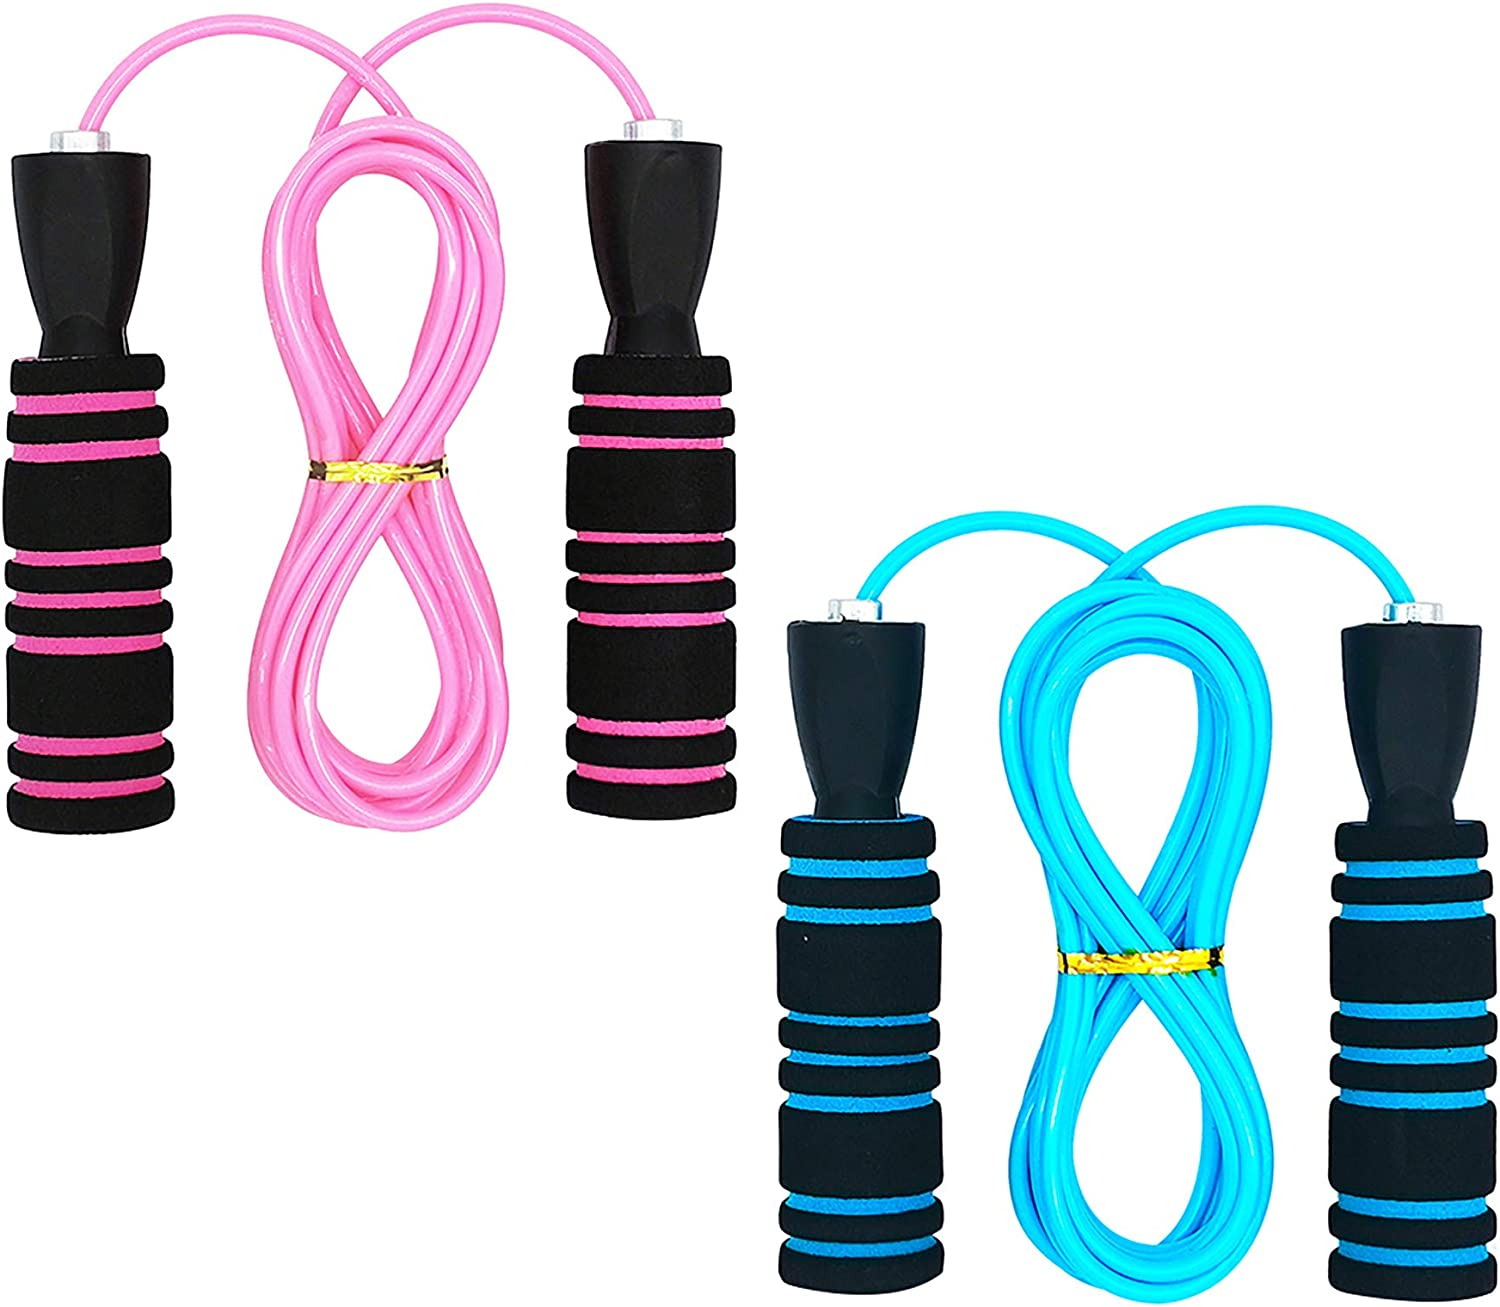 Kids Jump Rope Adjustable Jumping Ropes with Memory Foam Handles Ball Bearings Tangle-Free Speed Cable Skipping Rope for kids,Children and Students